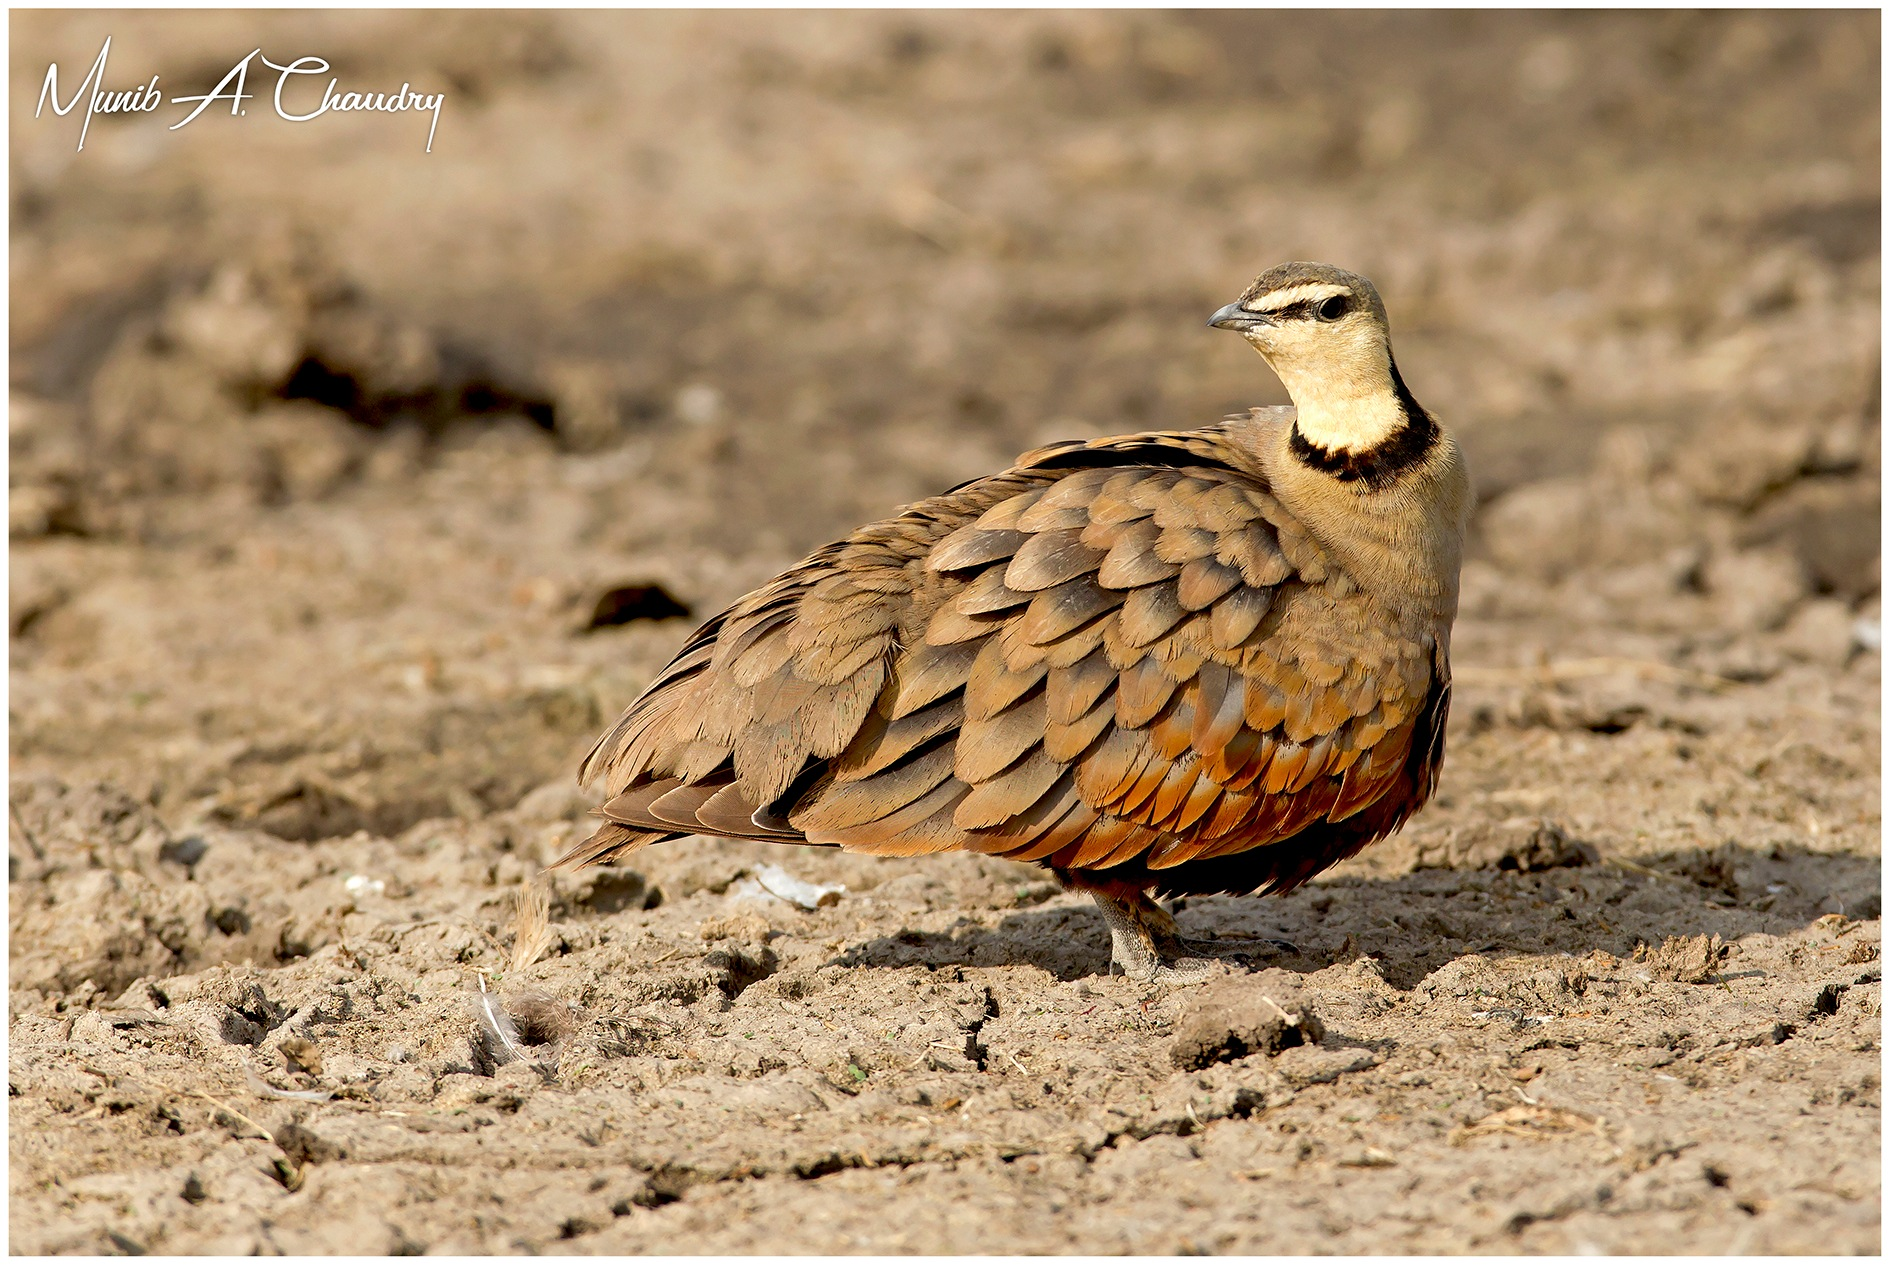 The Male Sandgrouse! by munibchaudry